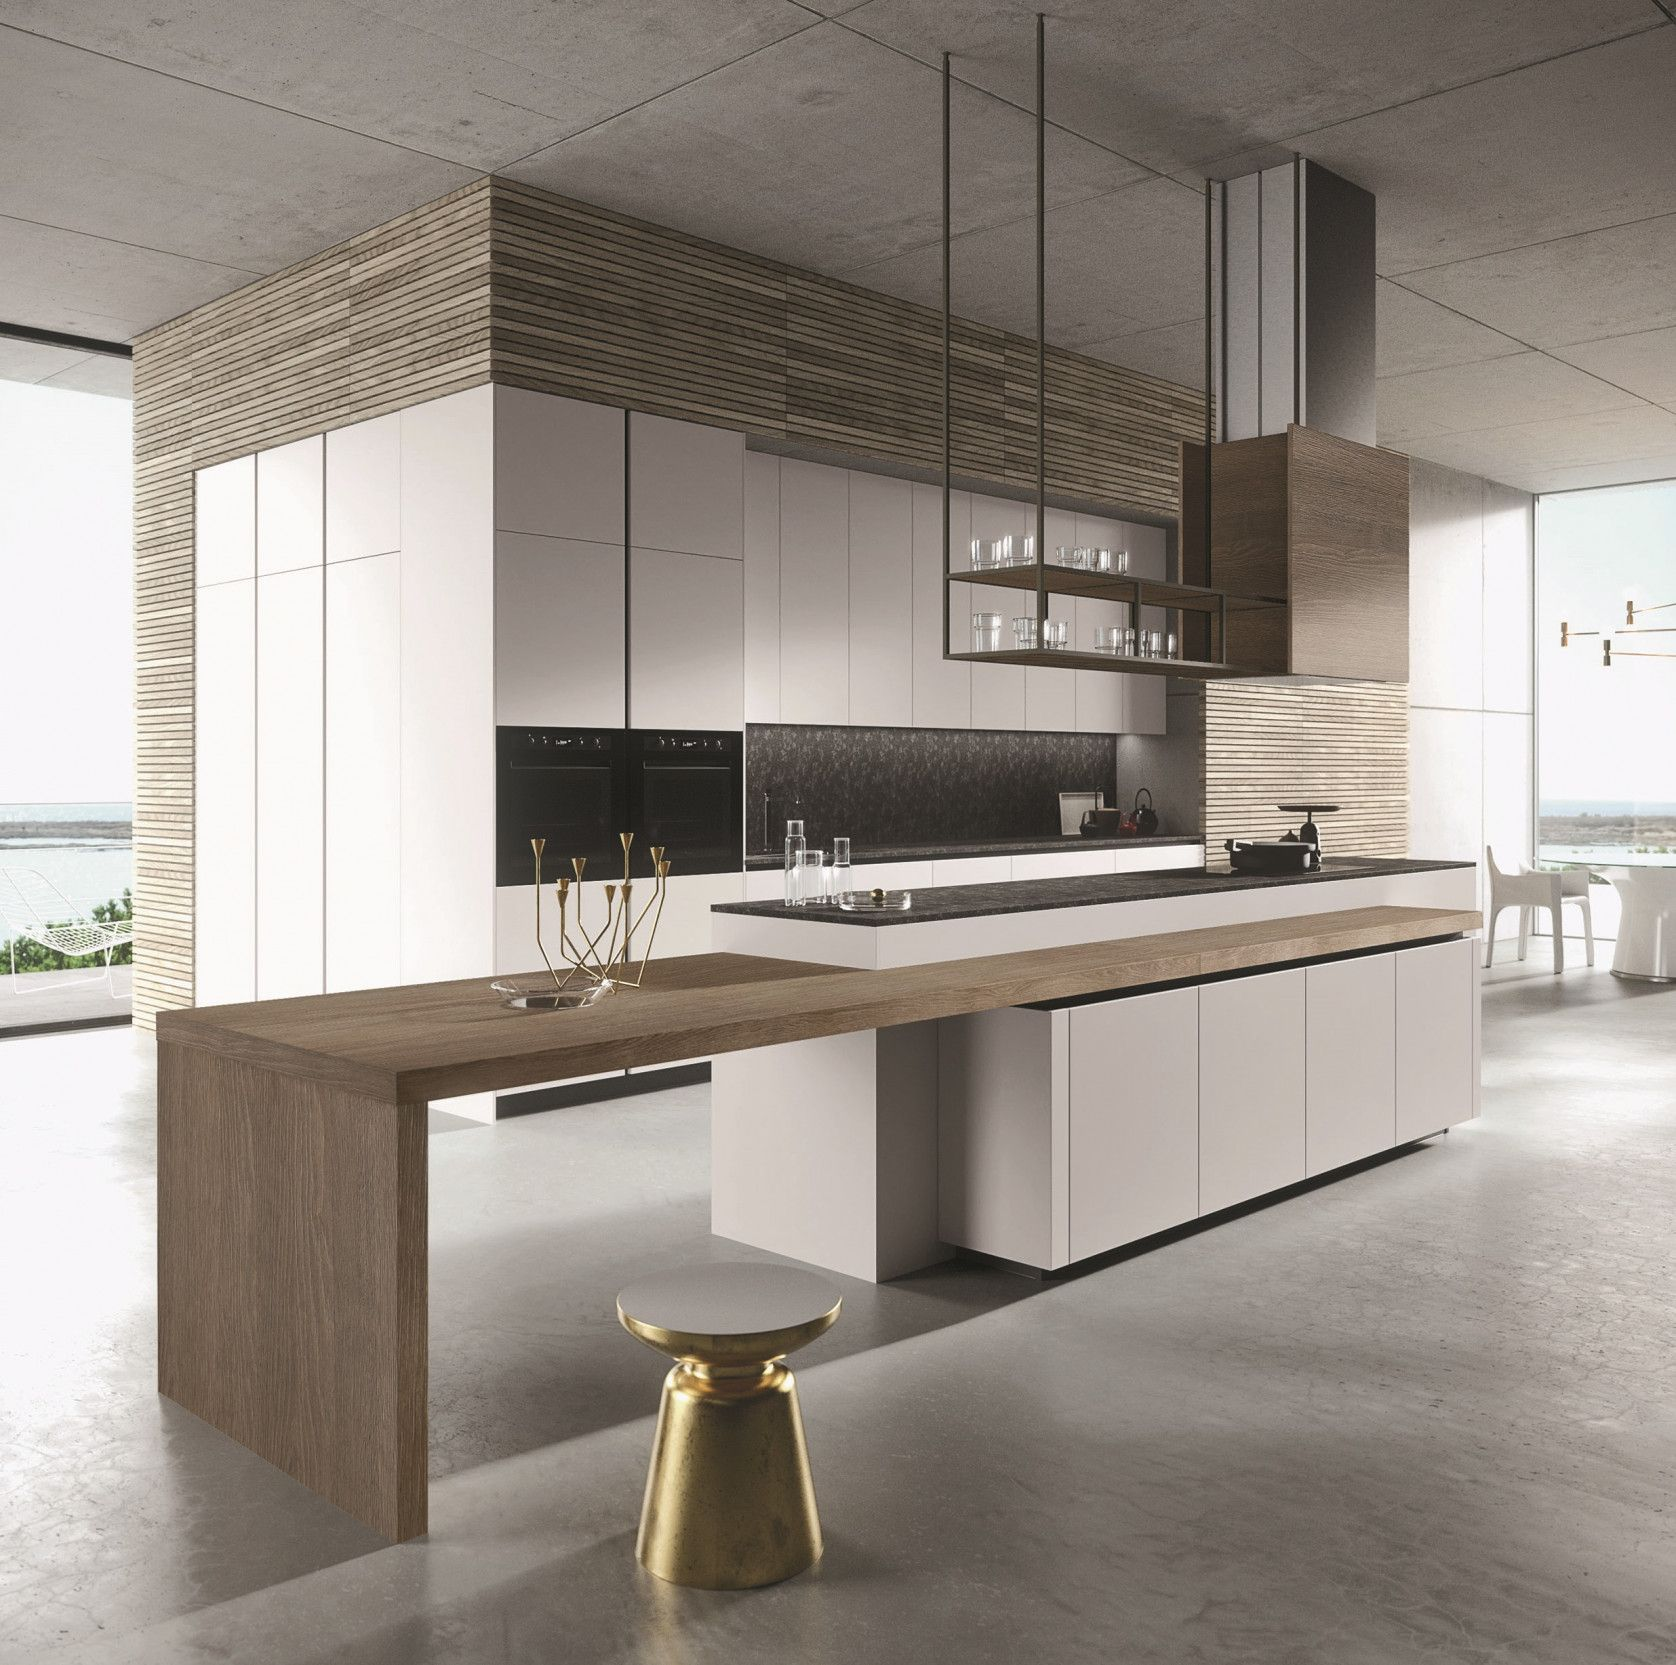 2019 Italian Kitchen Cabinets Miami Small Kitchen Island Ideas With Seating Check More A Modern Kitchen Design Kitchen Inspiration Modern White Wood Kitchens